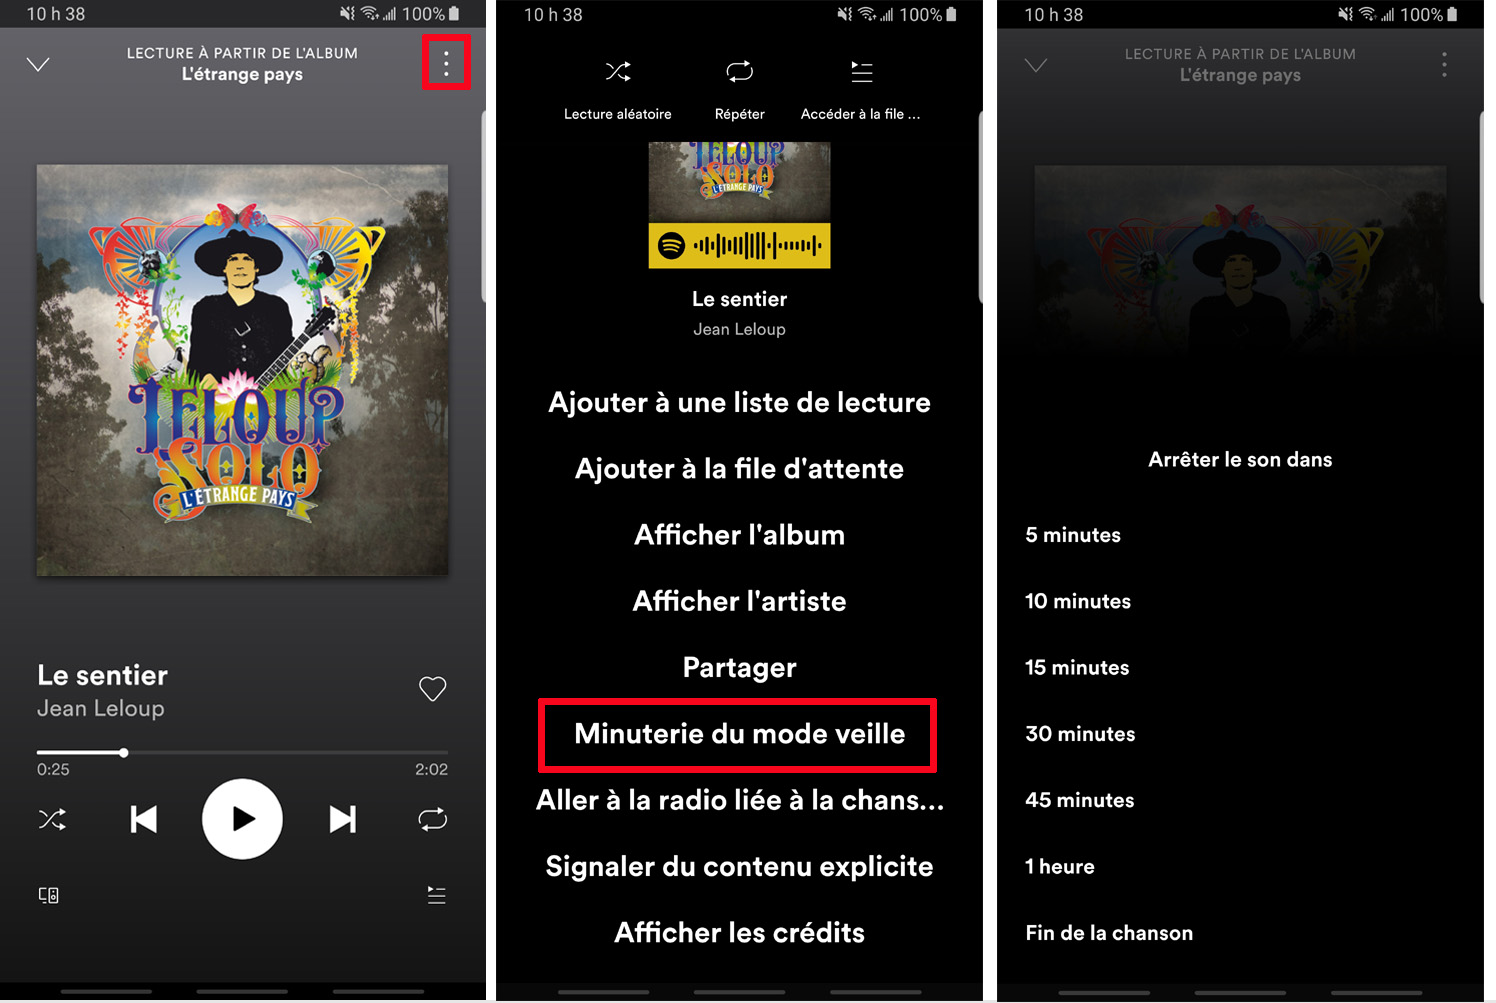 Spotify comment activer minuterie mode veille application Android